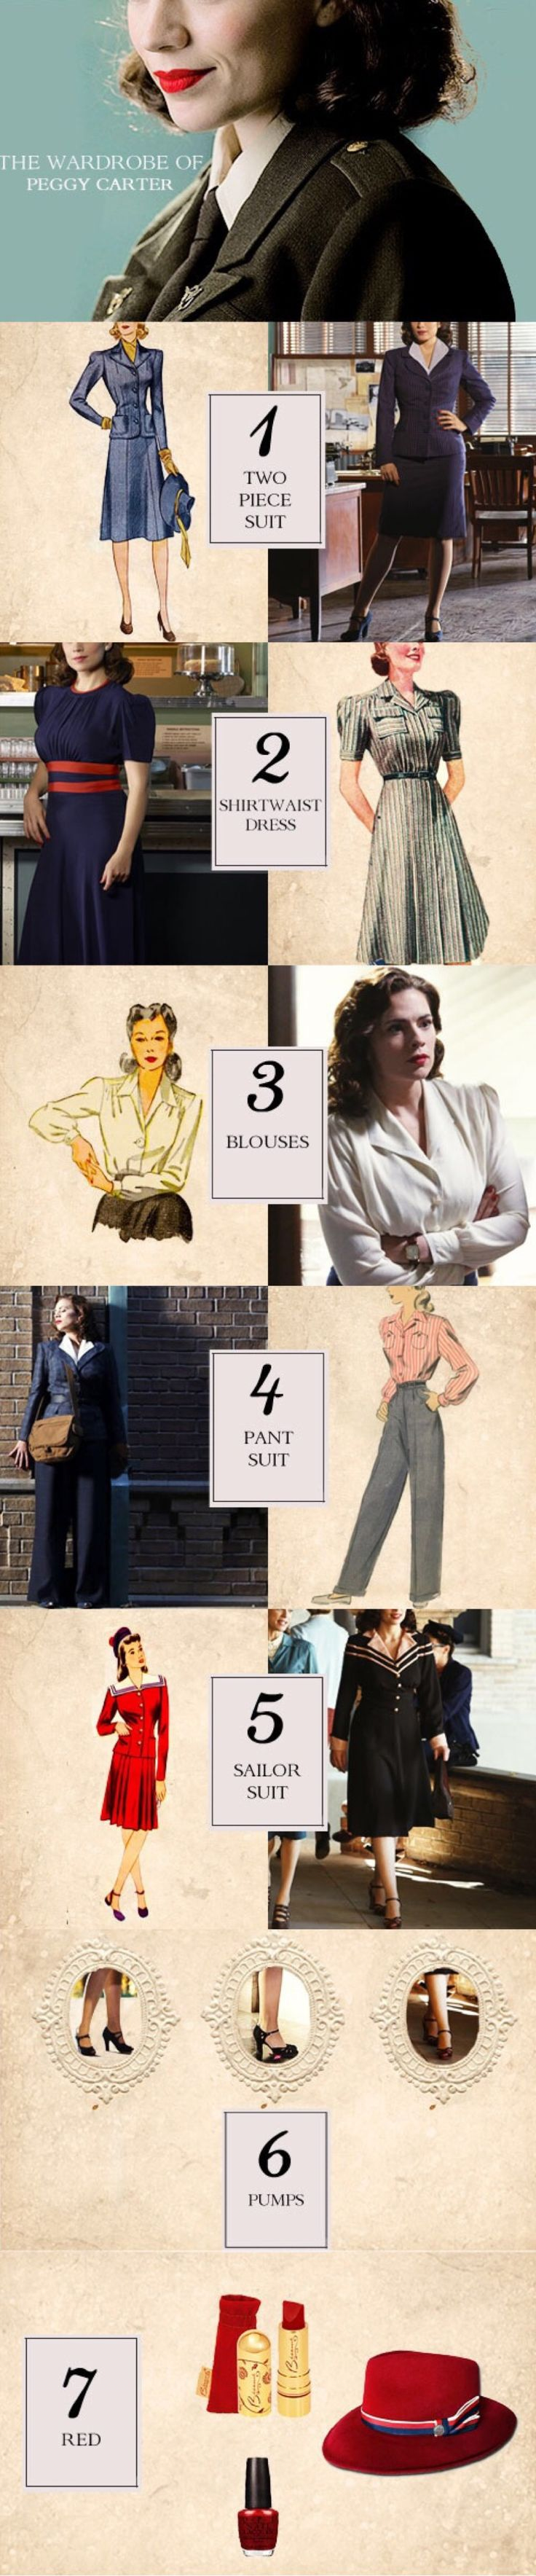 The Wardrobe of Peggy Carter